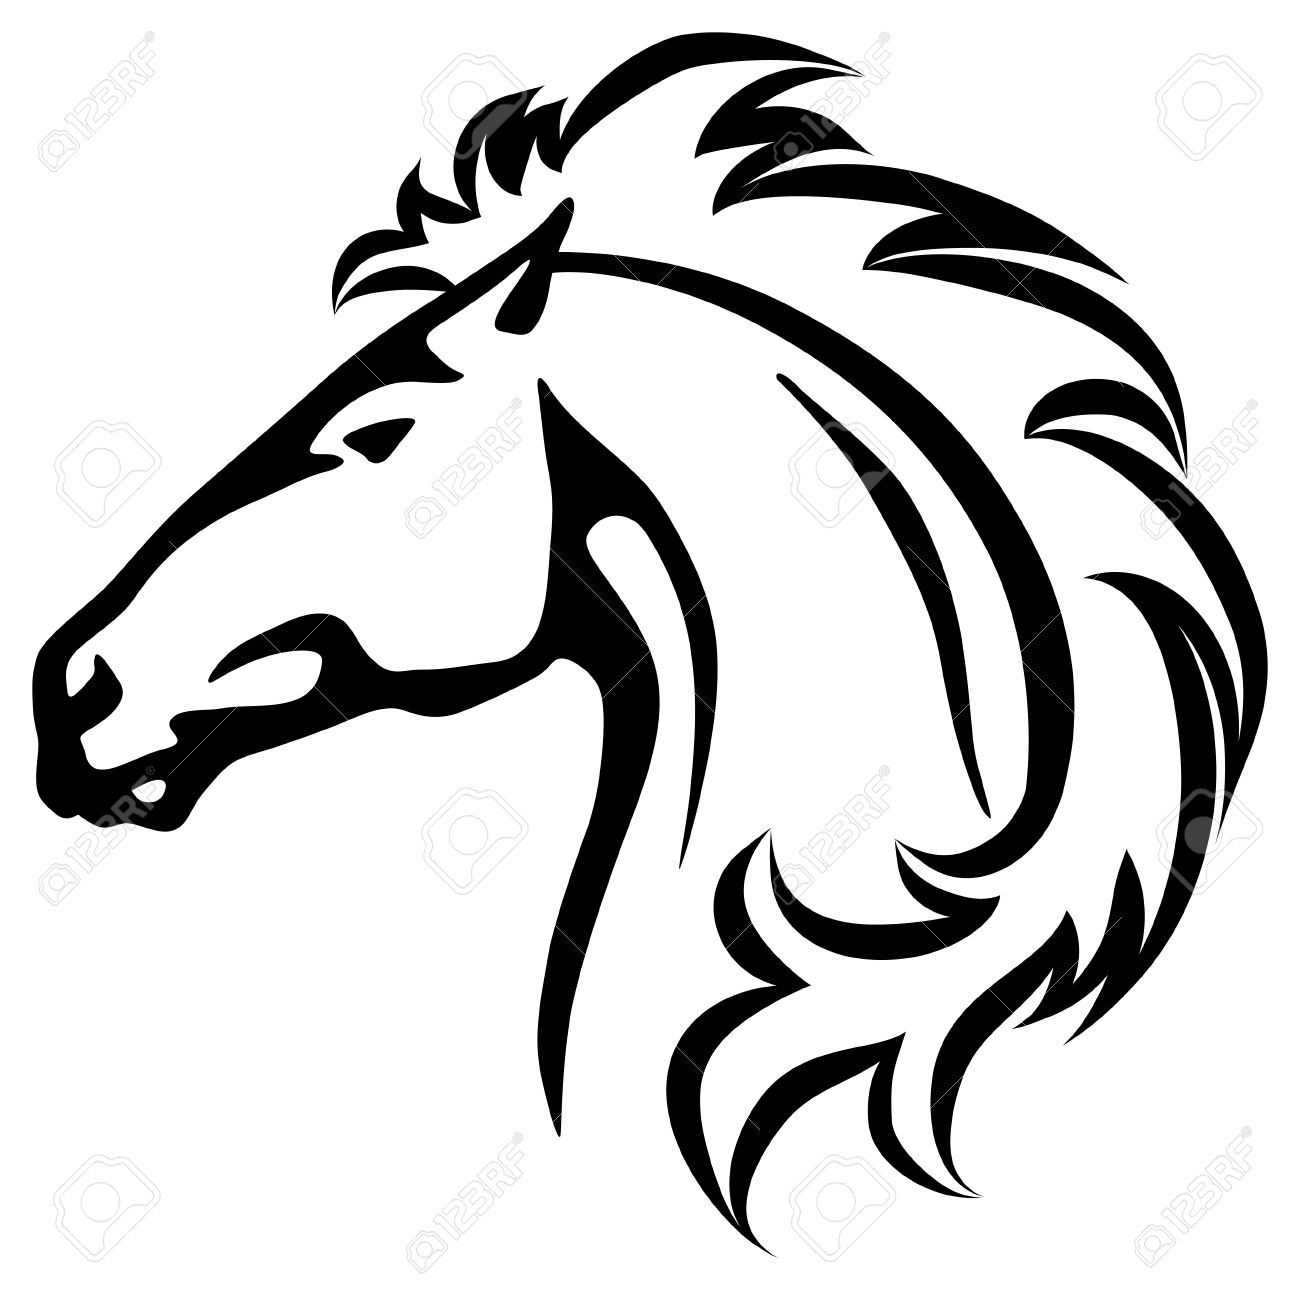 Vector Illustration Of A Wild Horse Head Royalty Free Cliparts Vectors And Stock Illustration Image 20654477